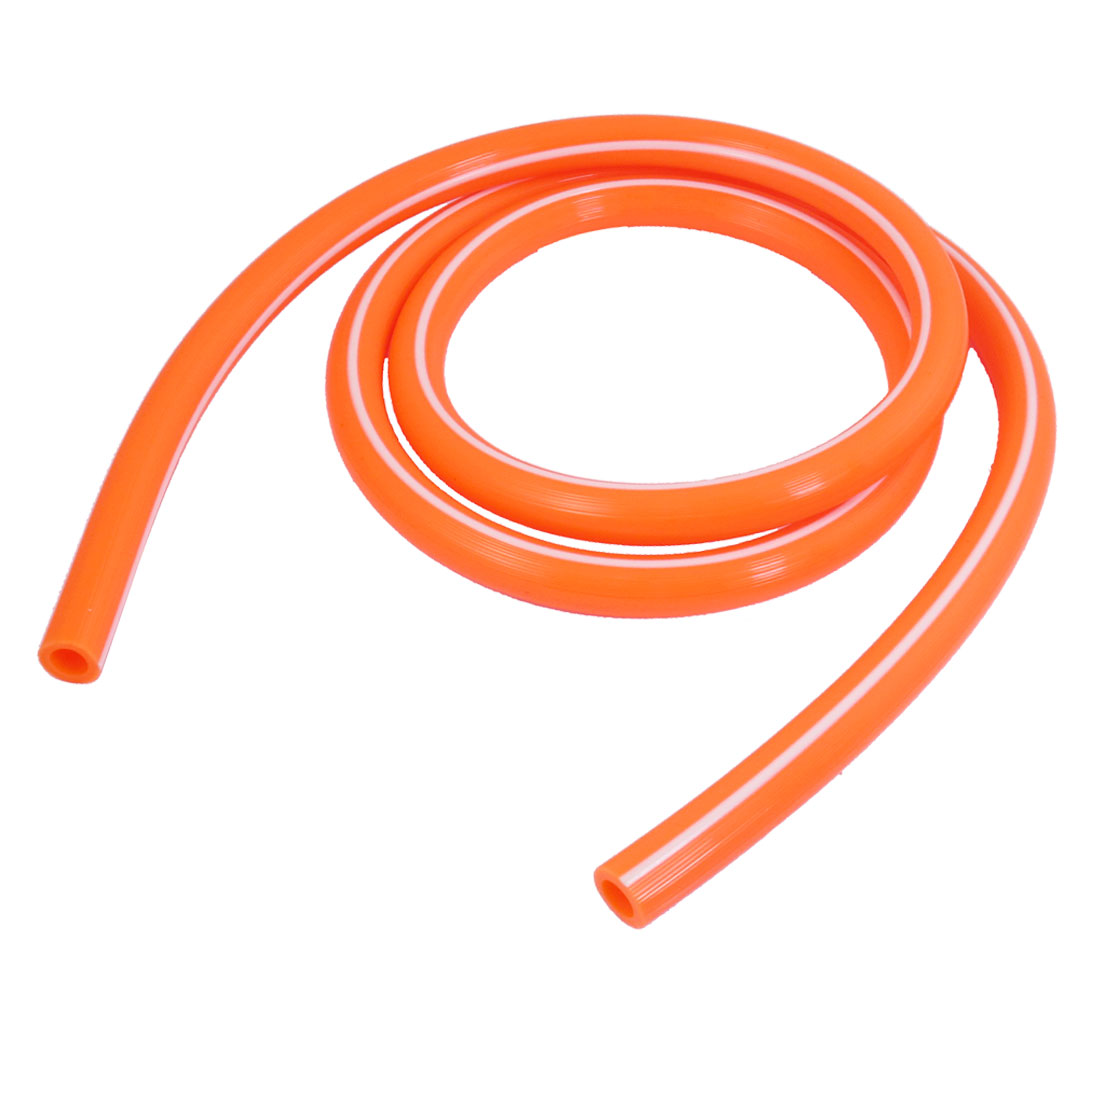 Replacement 14.5mm x 9mm Orange Red PE Tube Gas Water Pipe Hose 1.5M